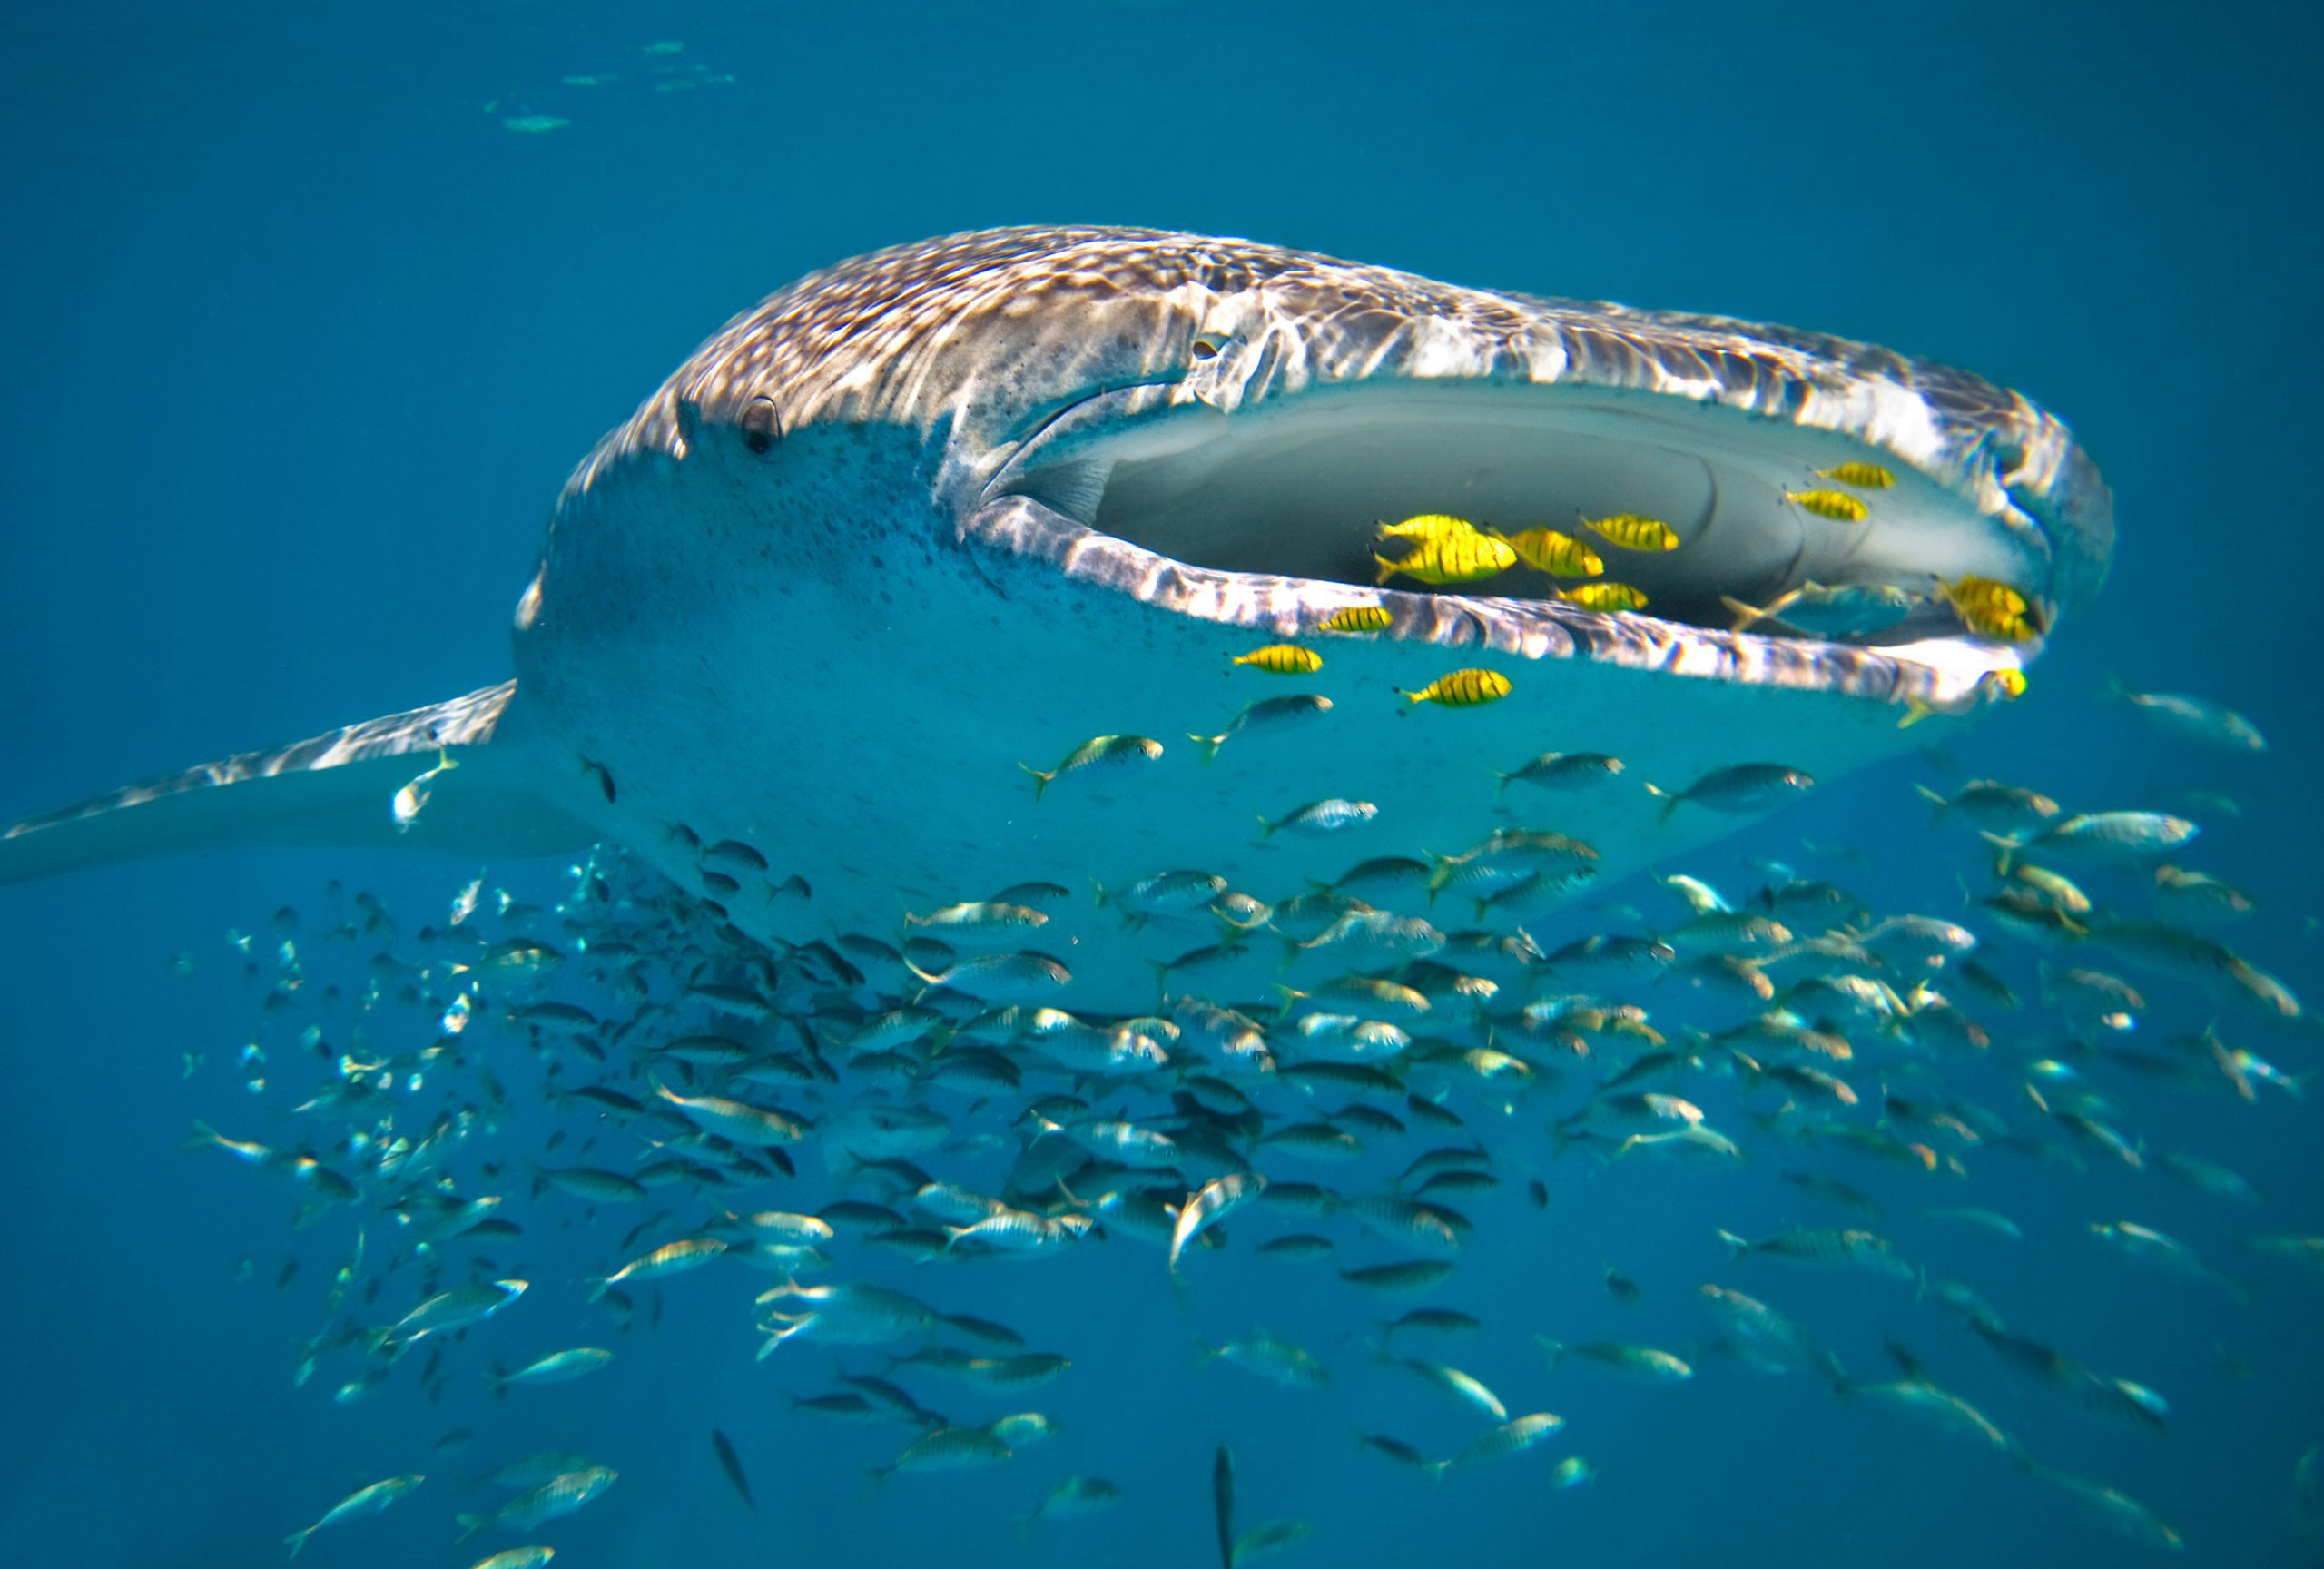 A whale shark gliding through the water and feeding on fish in Ningaloo Reef